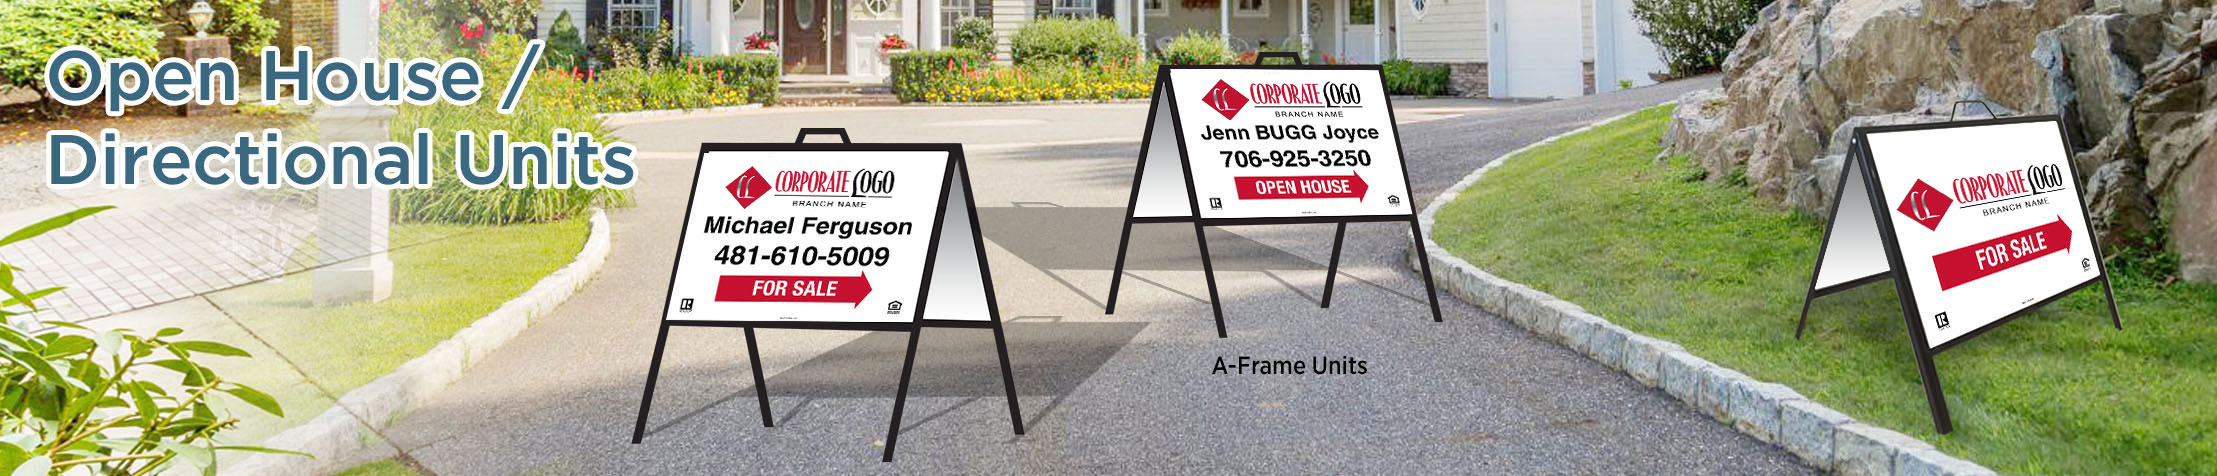 HomeSmart Real Estate Open House/Directional Units - HomeSmart  directional real estate signs | BestPrintBuy.com